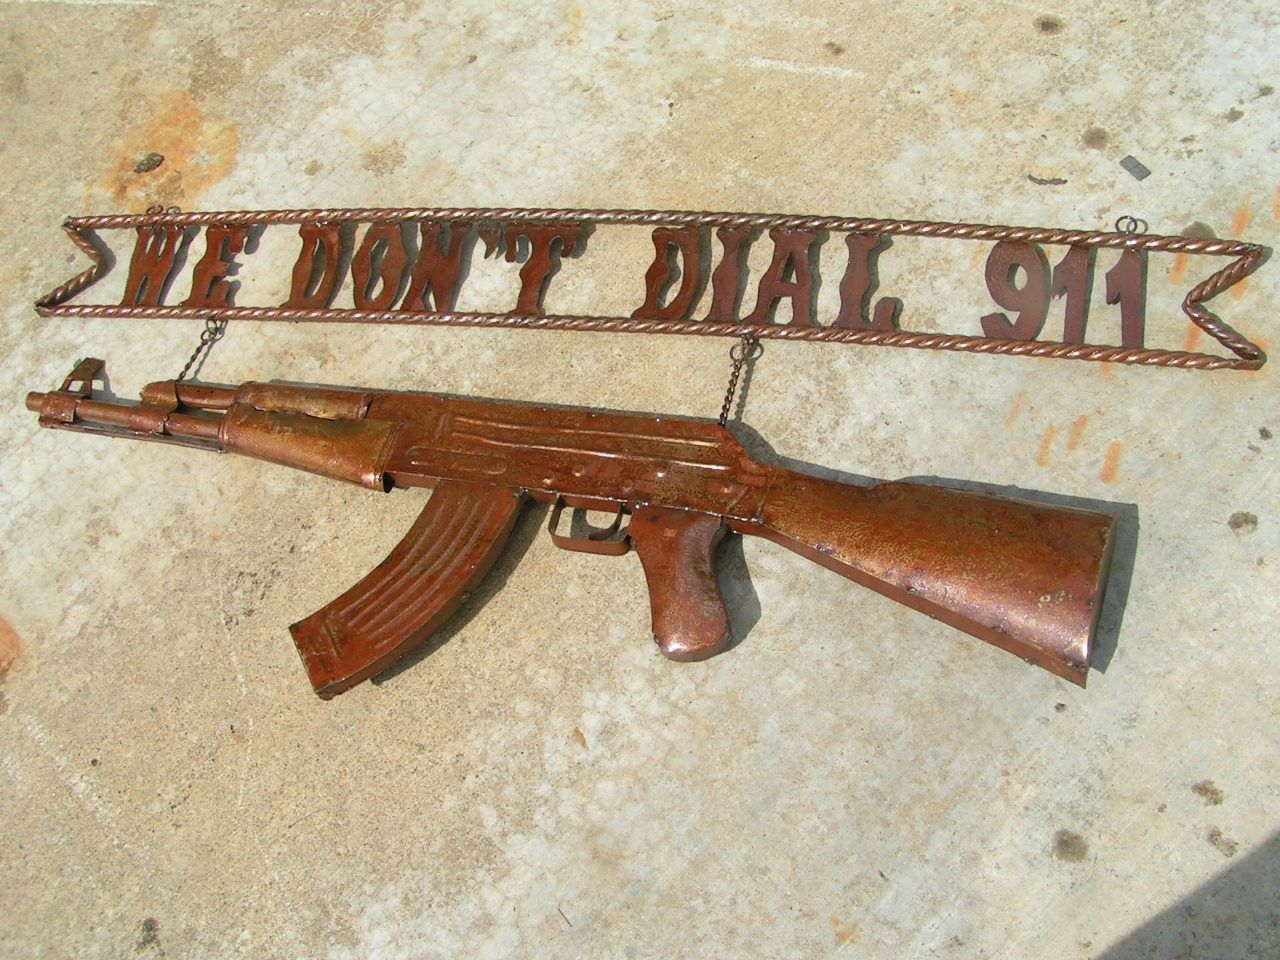 "Hanging Wall Gate Entry Sign WE DON'T DIAL 911 AK 47 Rifle 45"" bz"